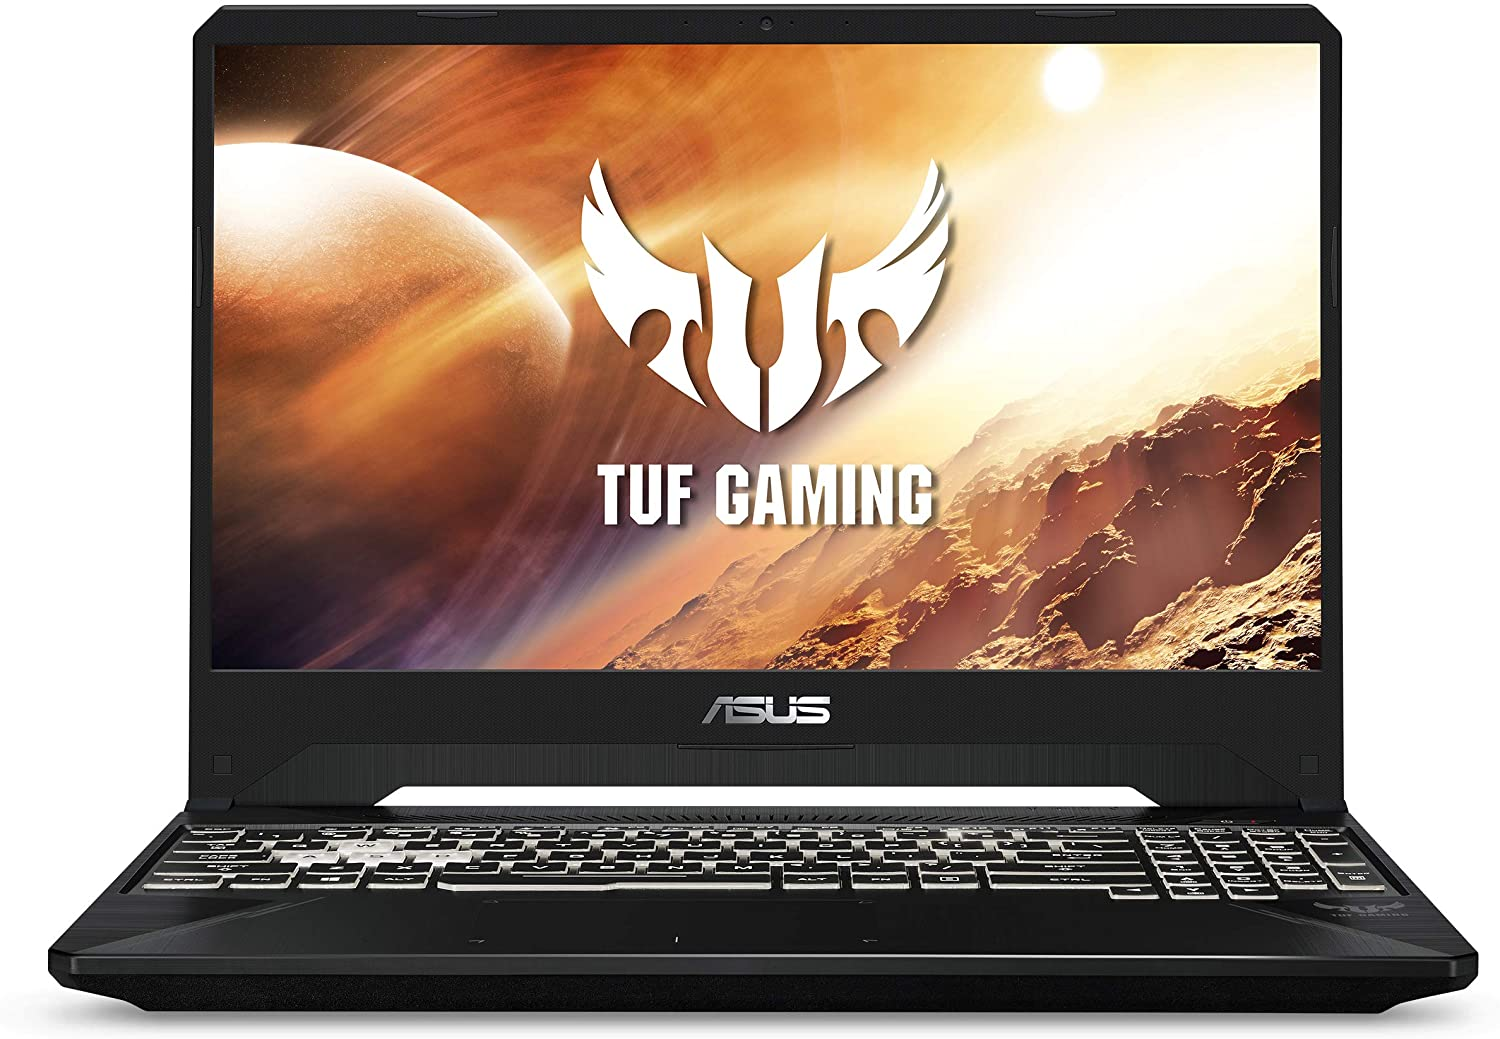 ASUS TUF Gaming Laptop - 15.6